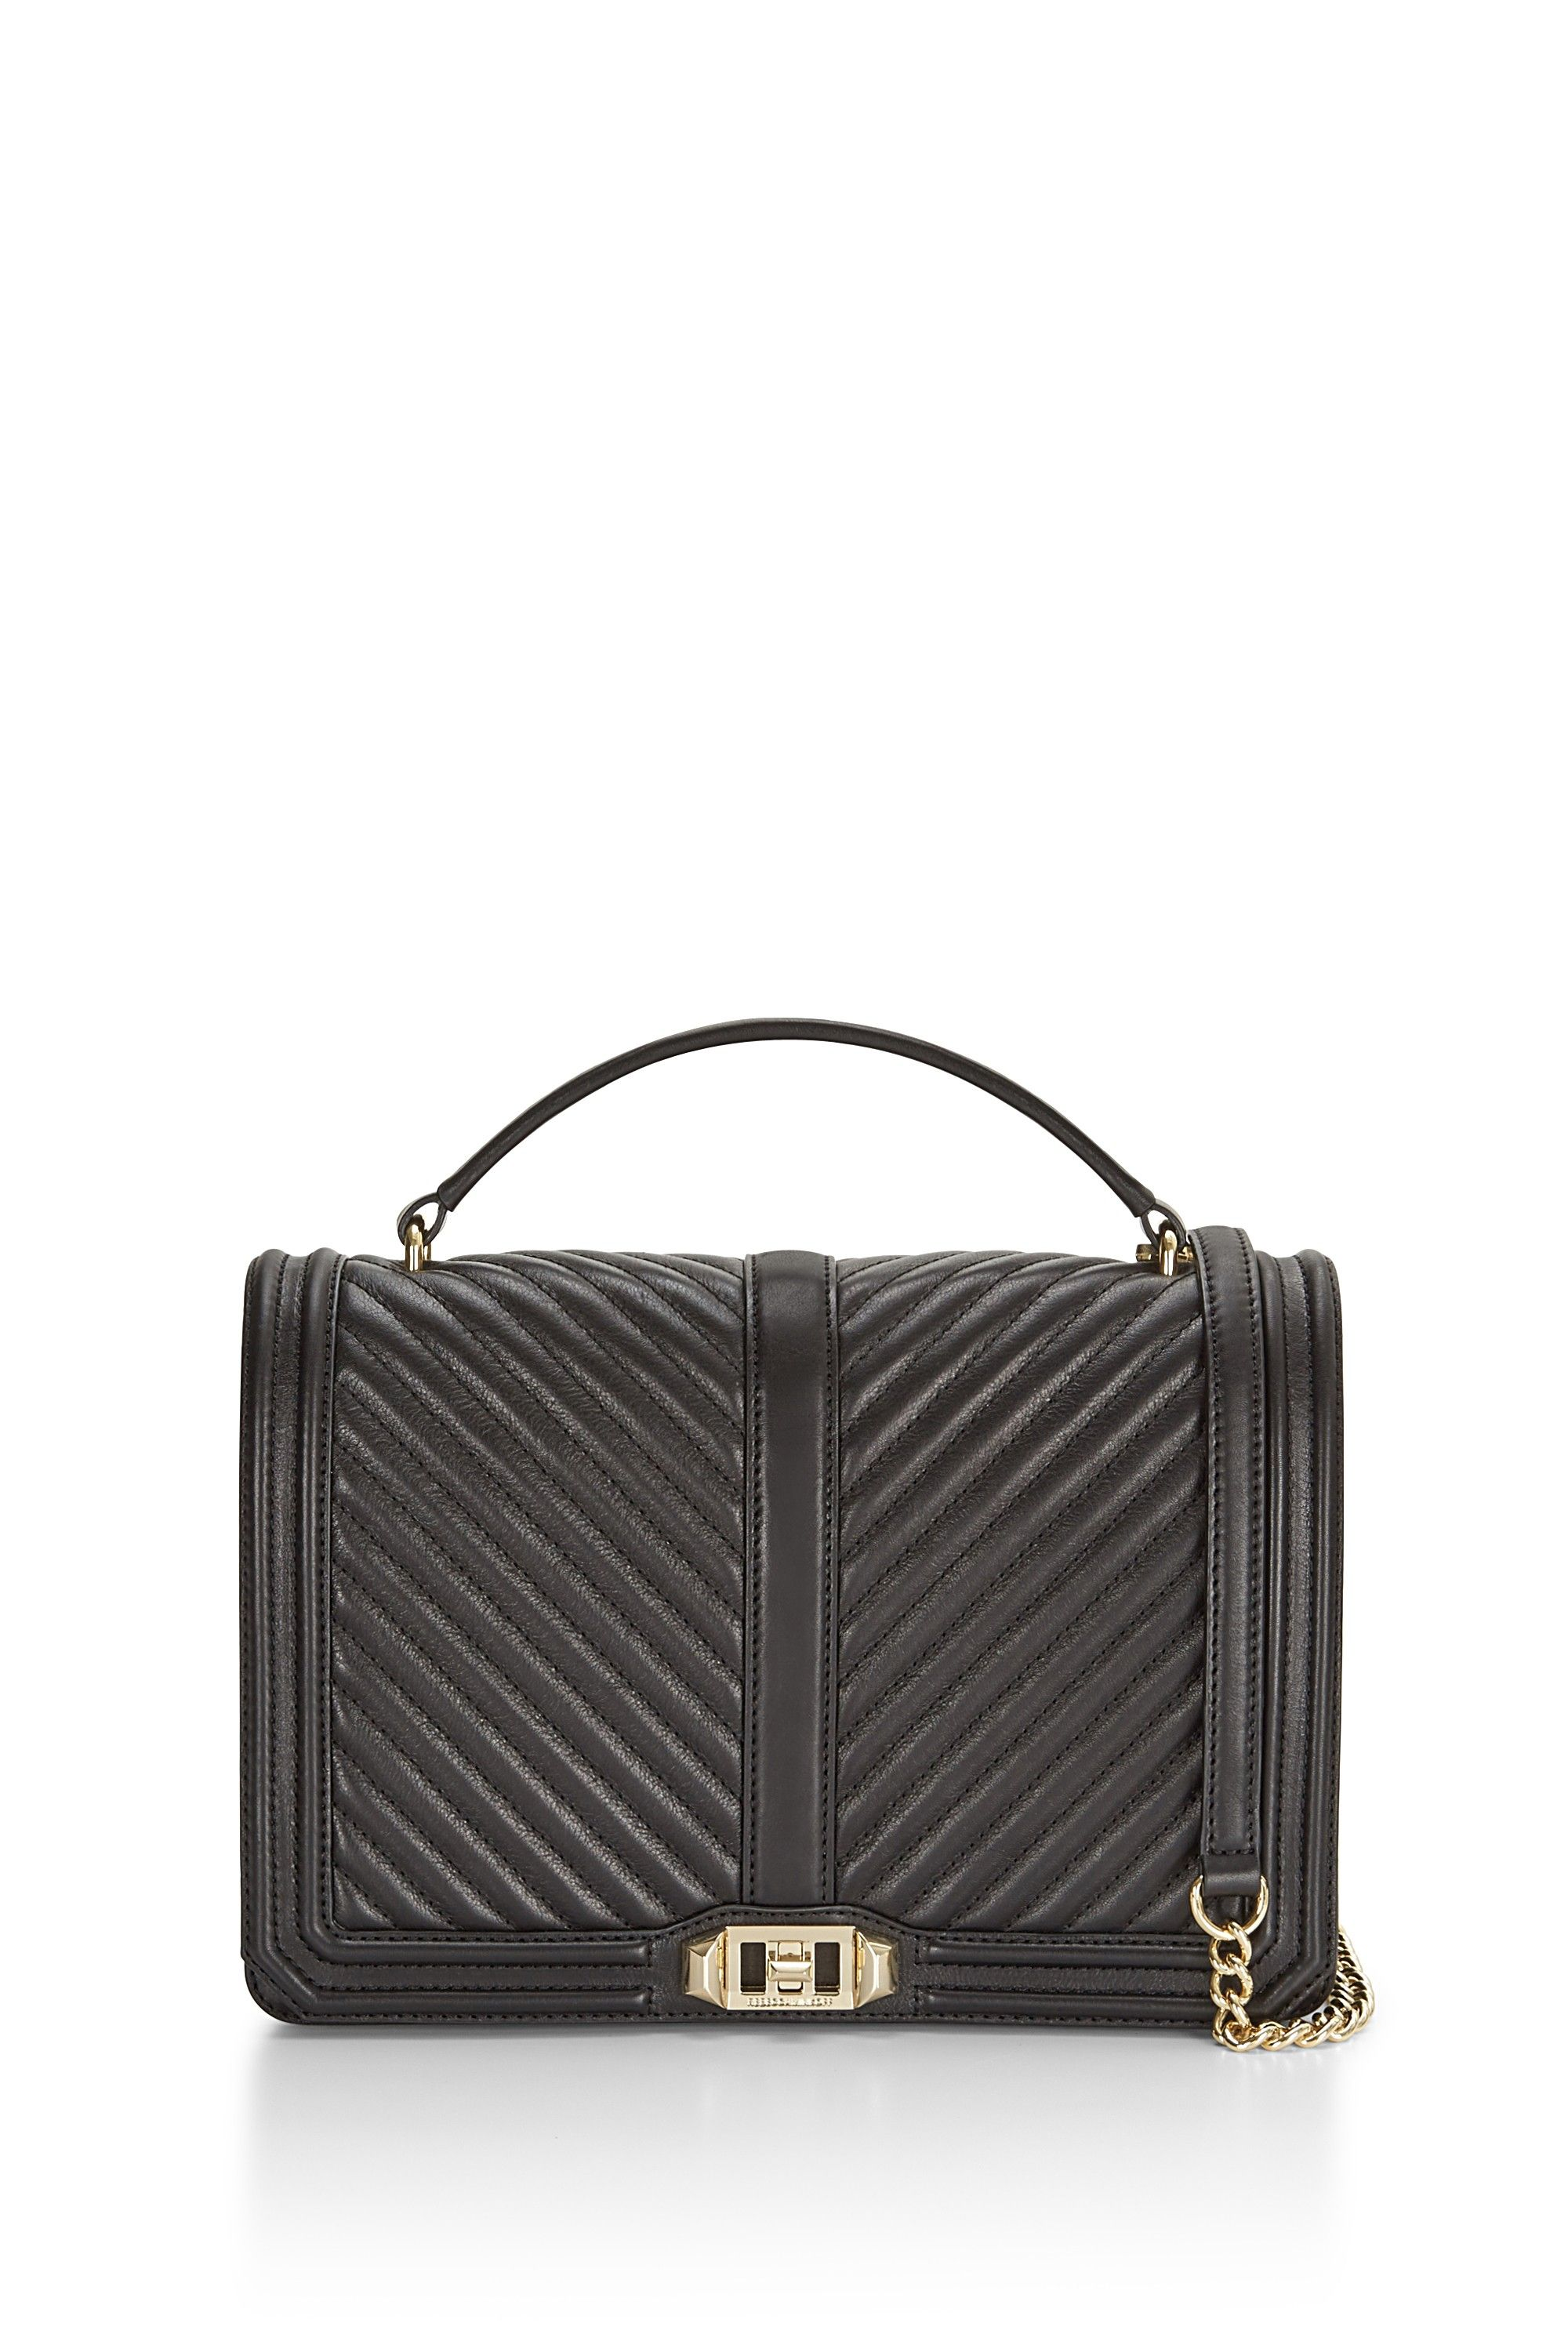 0e36a04b3 Chevron Quilted Jumbo Love Crossbody With Top Handle - Meet your new  going-out bag. Featuring eye catching hardware, the Love Crossbody is a  match made in ...